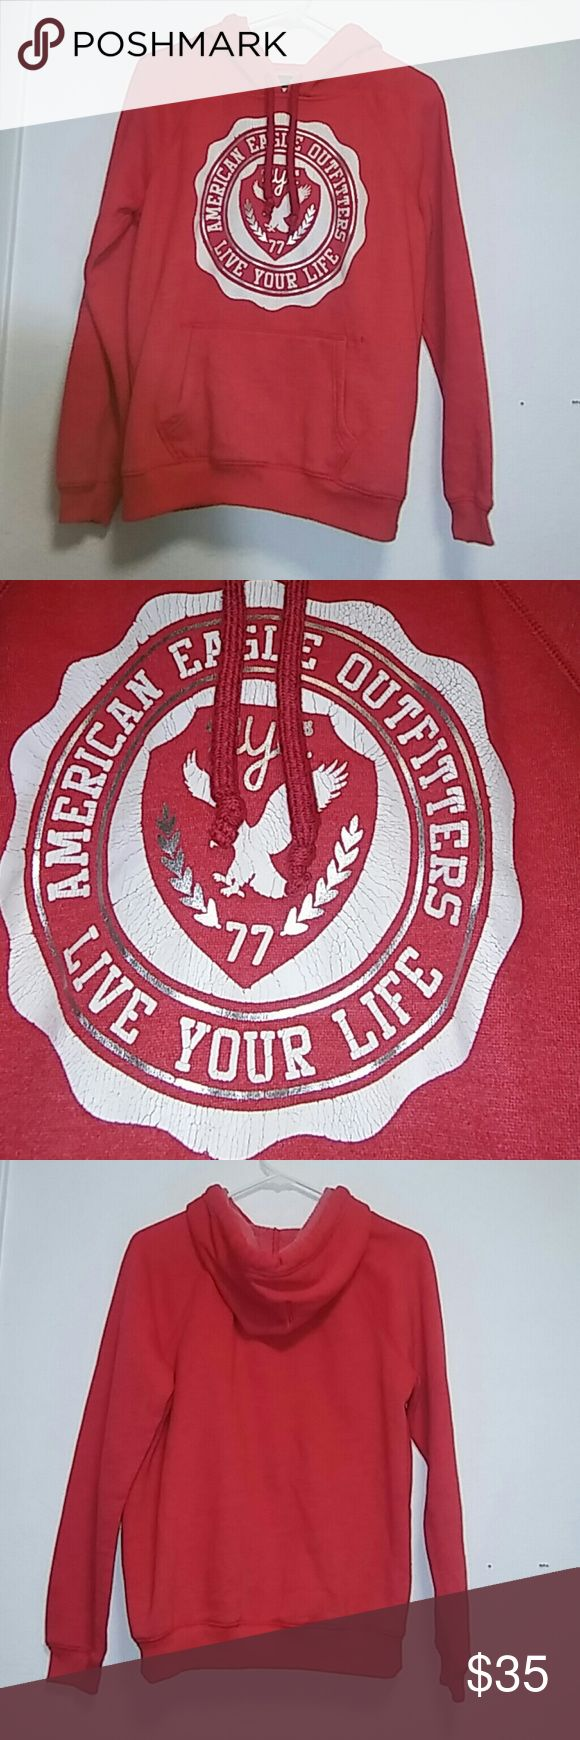 American Eagle Outfitter Men's Red Hoodie Sz M American Eagle Outfitter Men's Red Hoodie Sz M American Eagle Outfitters Shirts Sweatshirts & Hoodies